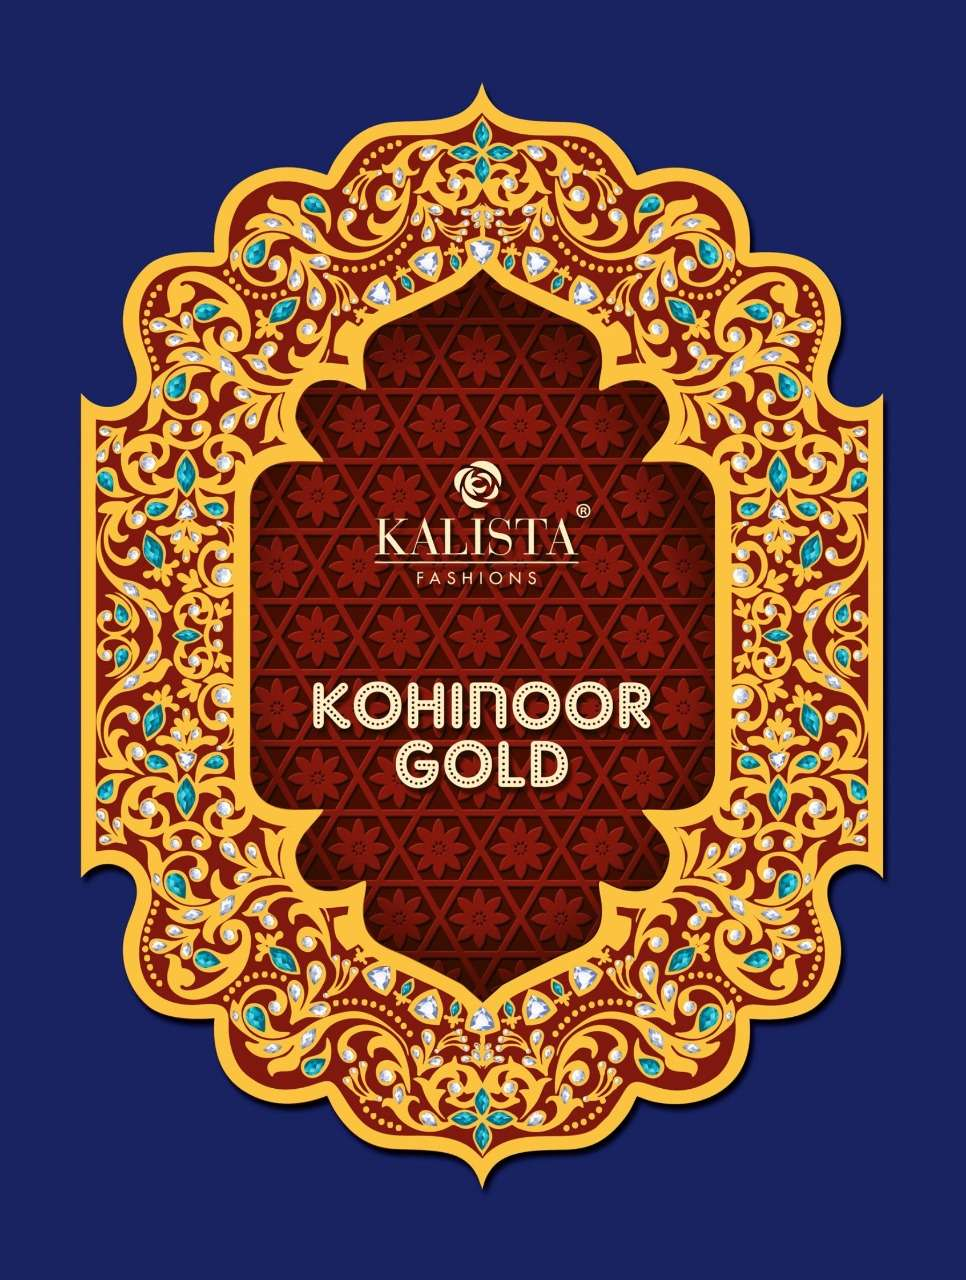 kalista kohinoor gold imported heavy viscose embroidery bridal sarees